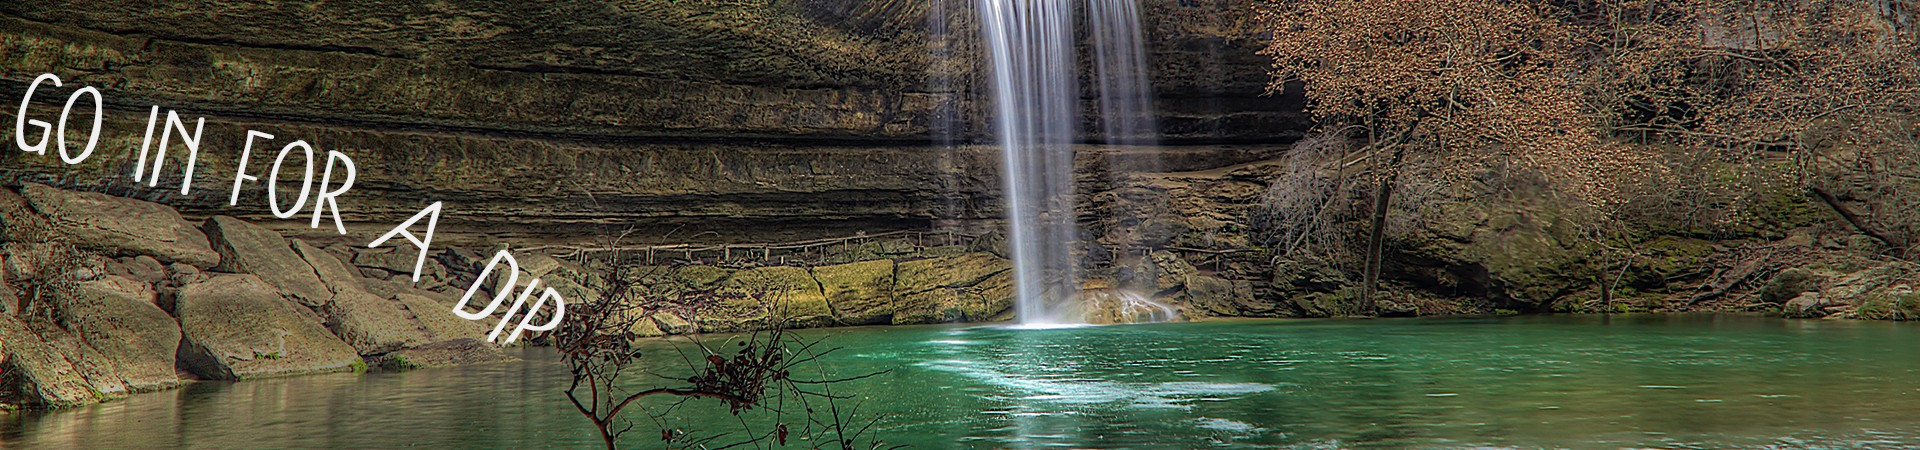 Go in for a dip - spring pool at Hamilton's Pool in Texas